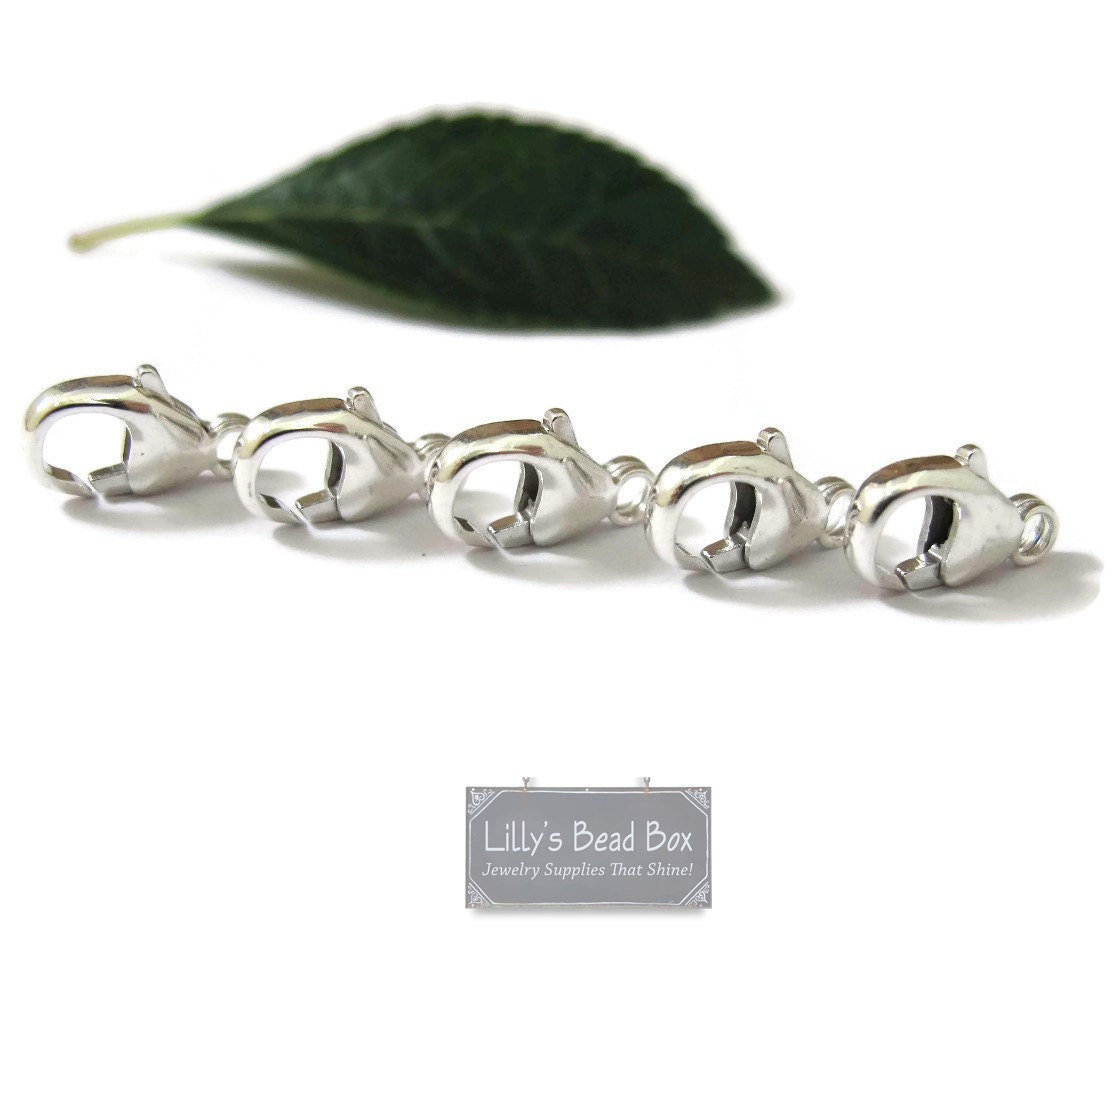 Silver Clasp, Medium Sterling Silver 11mm Lobster Claws, Set of 5, Silver Findings, Jewelry ...